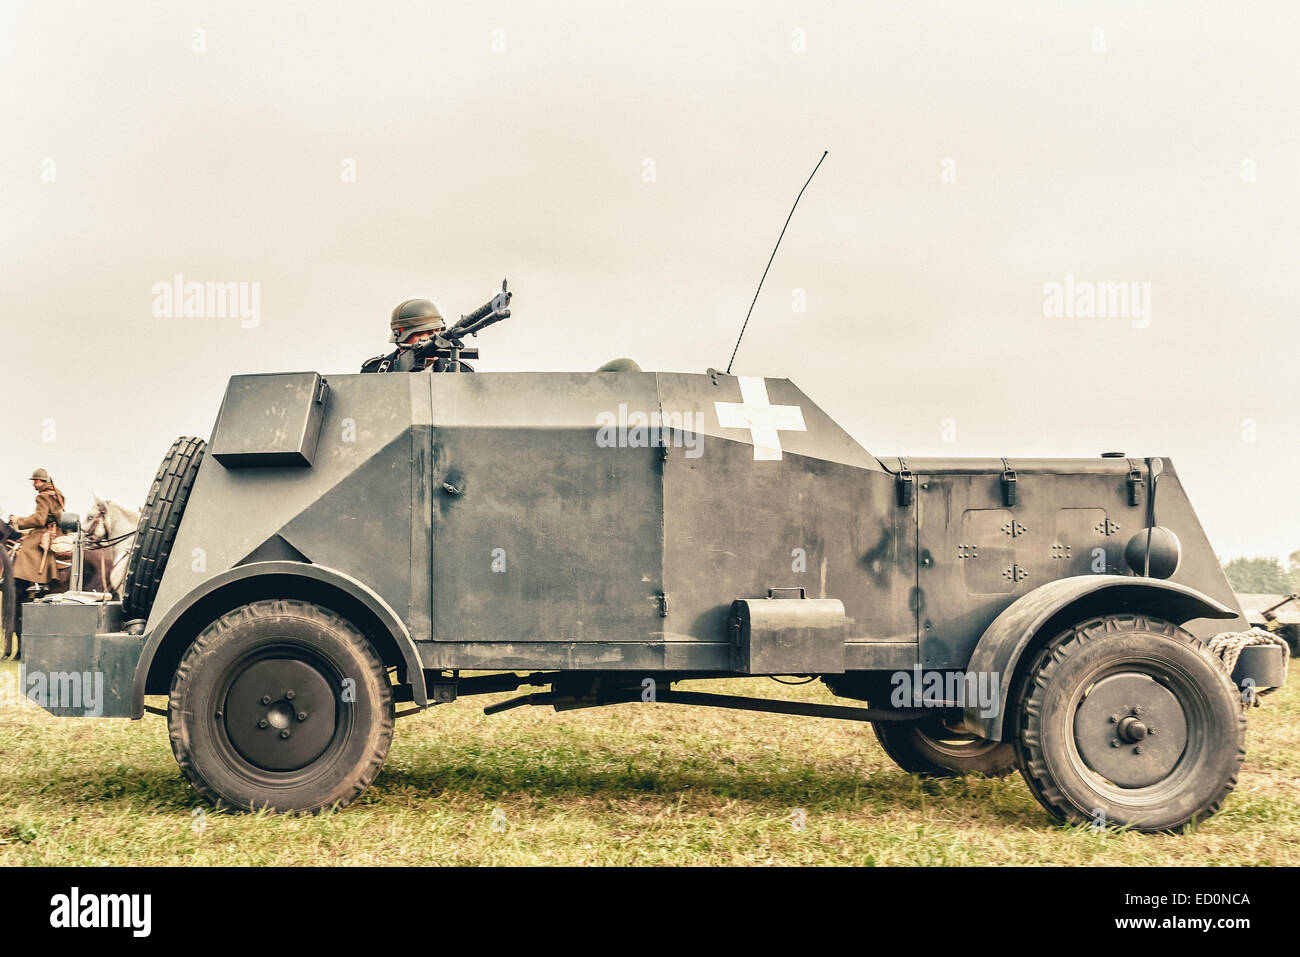 German Adler (MgKw, Kfz. 13) armoured car during WWII Battle of Lomianki - historical reenactment, Poland - Stock Image